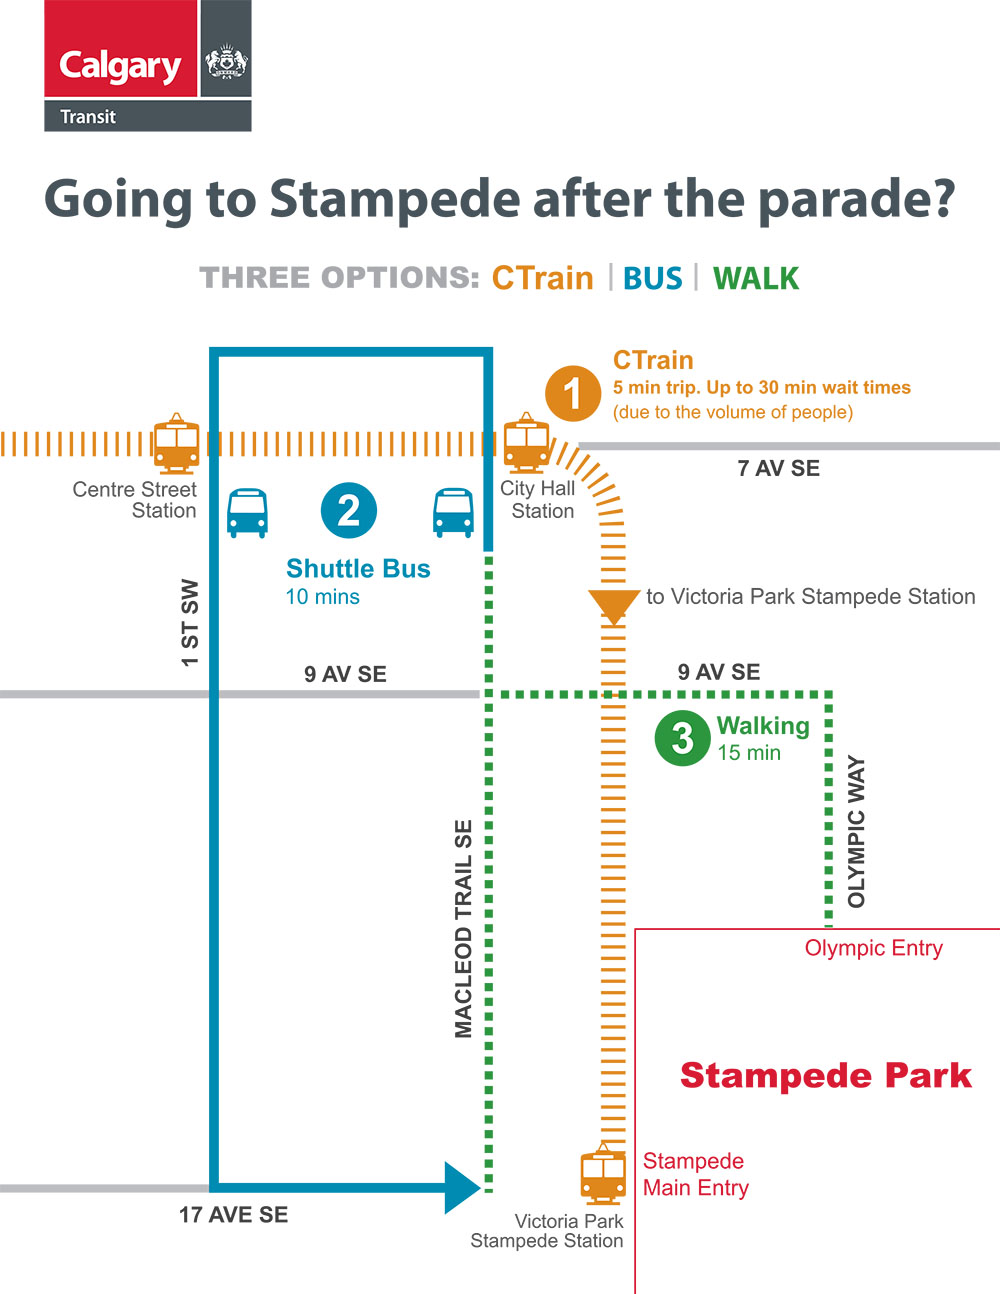 How to get to Calgary Stampede after the Parade (Calgary Transit)